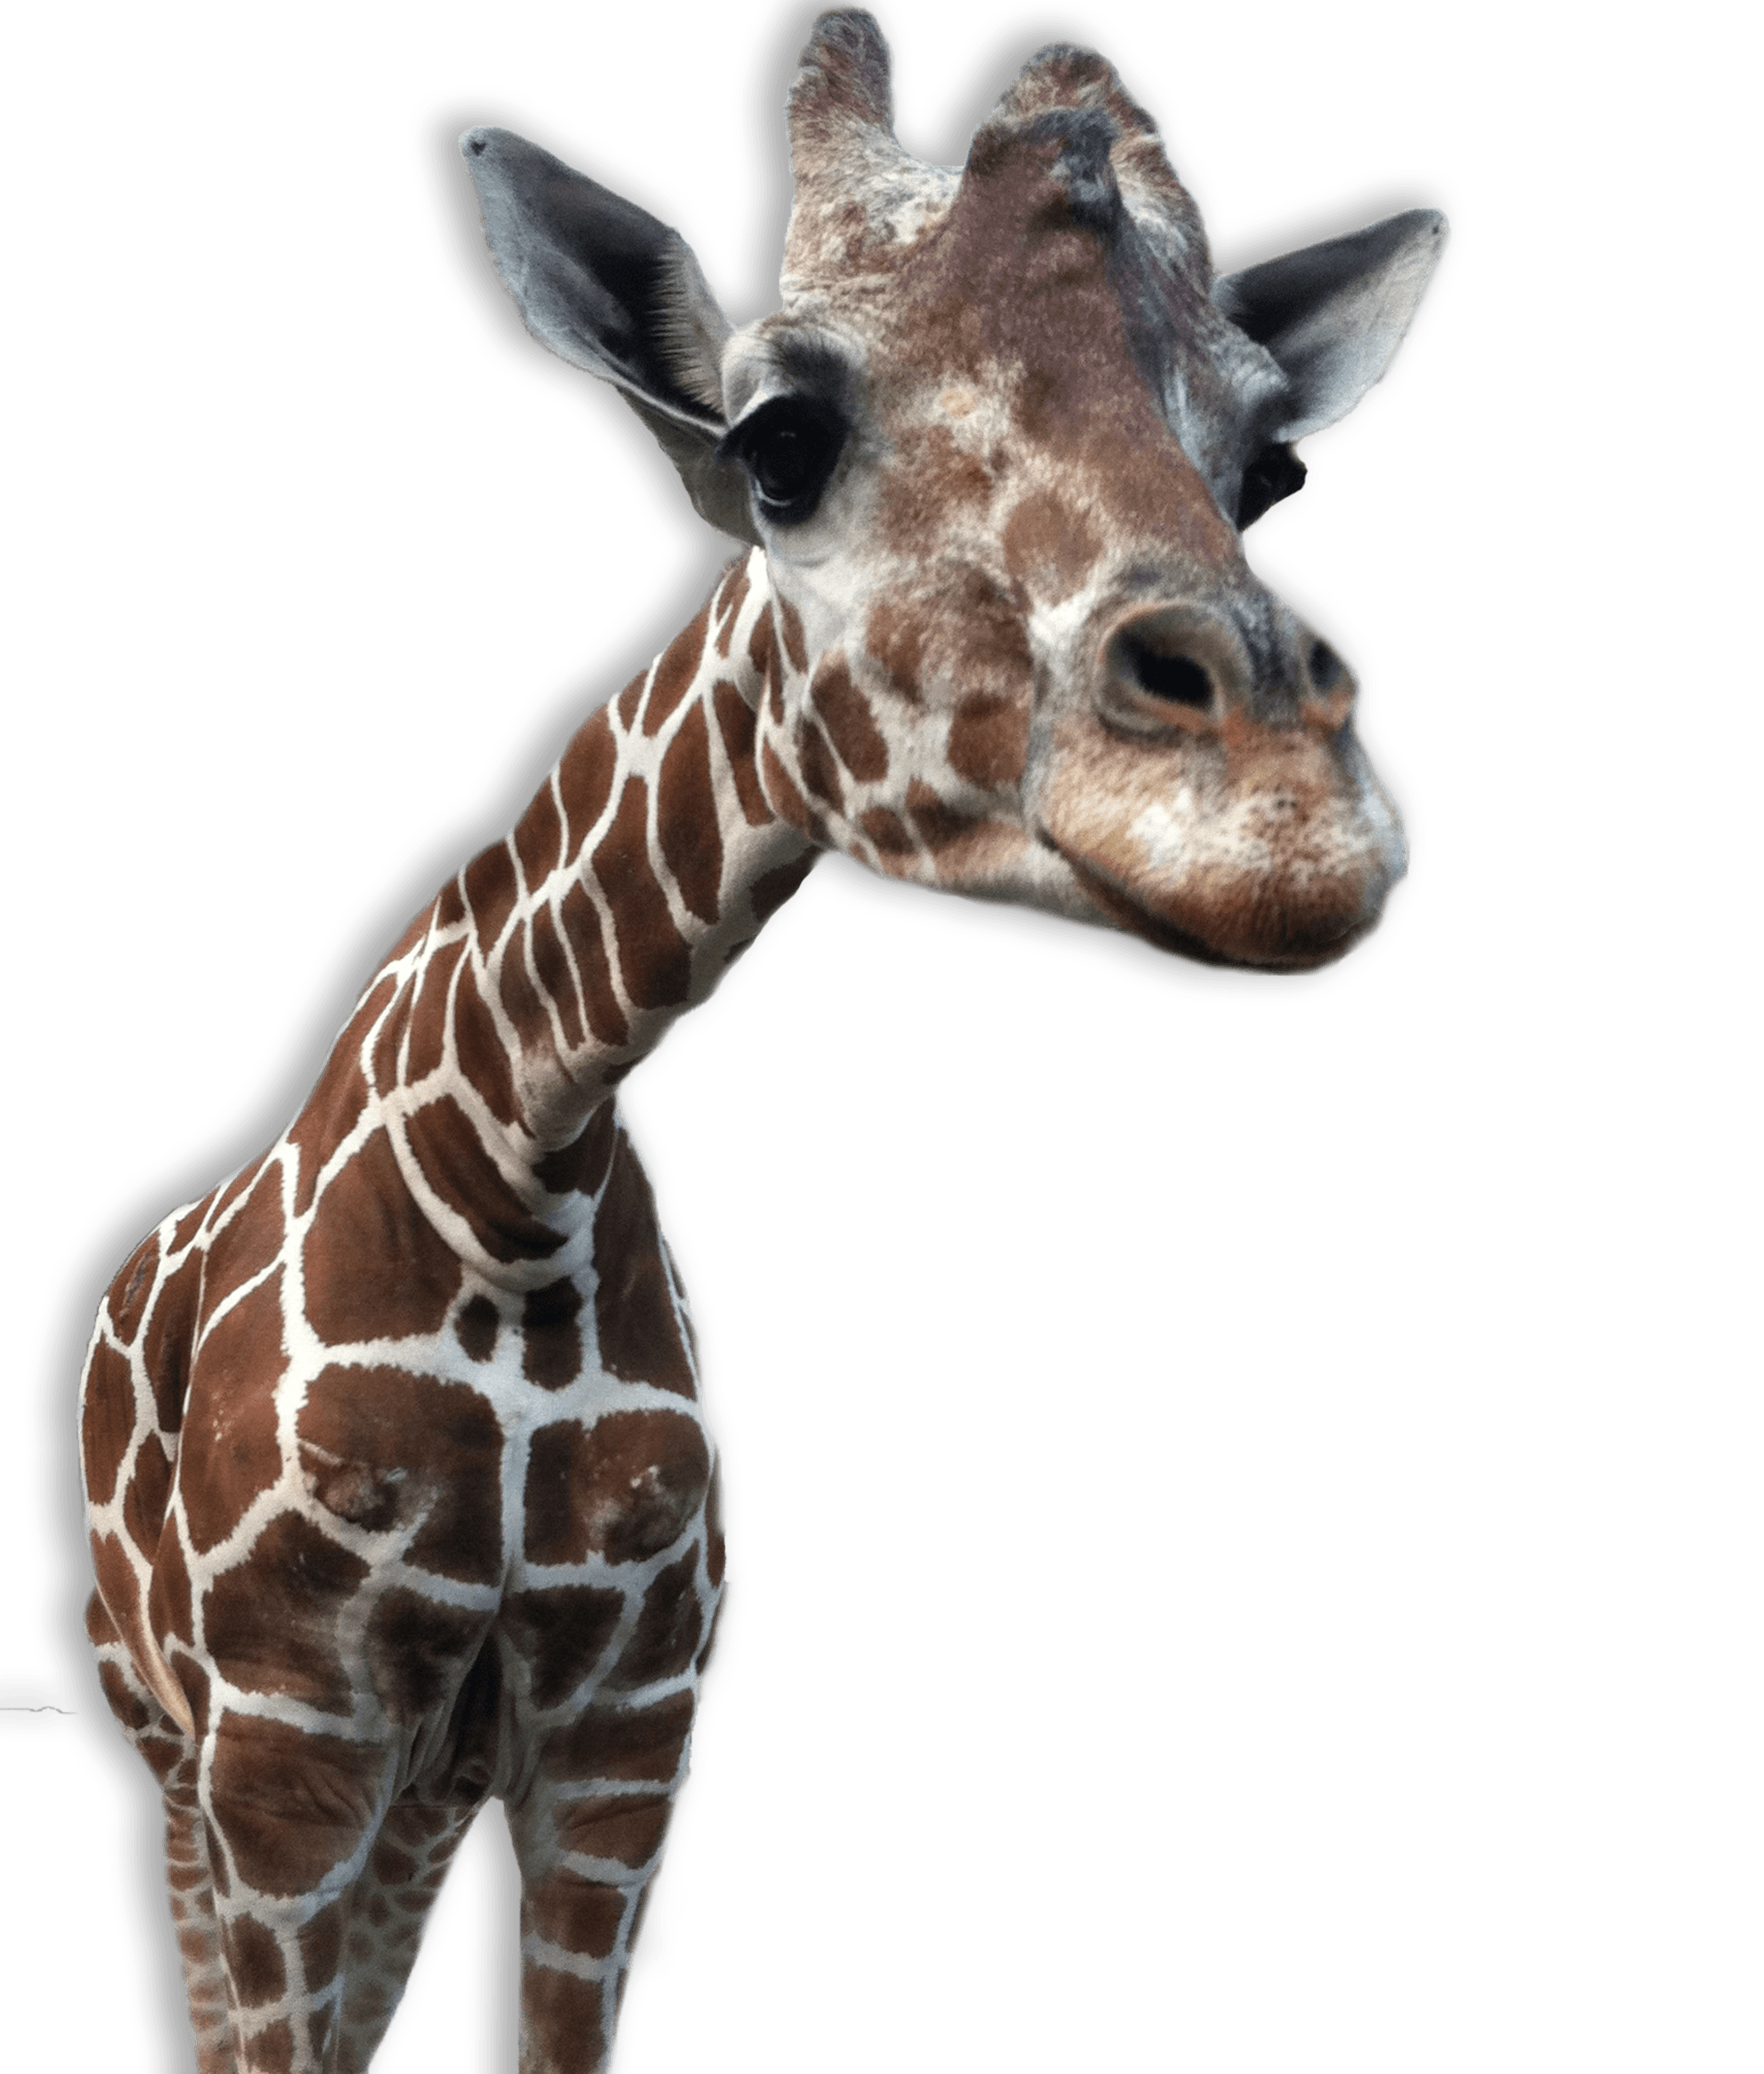 Giraffe Head PNG HD - 129410